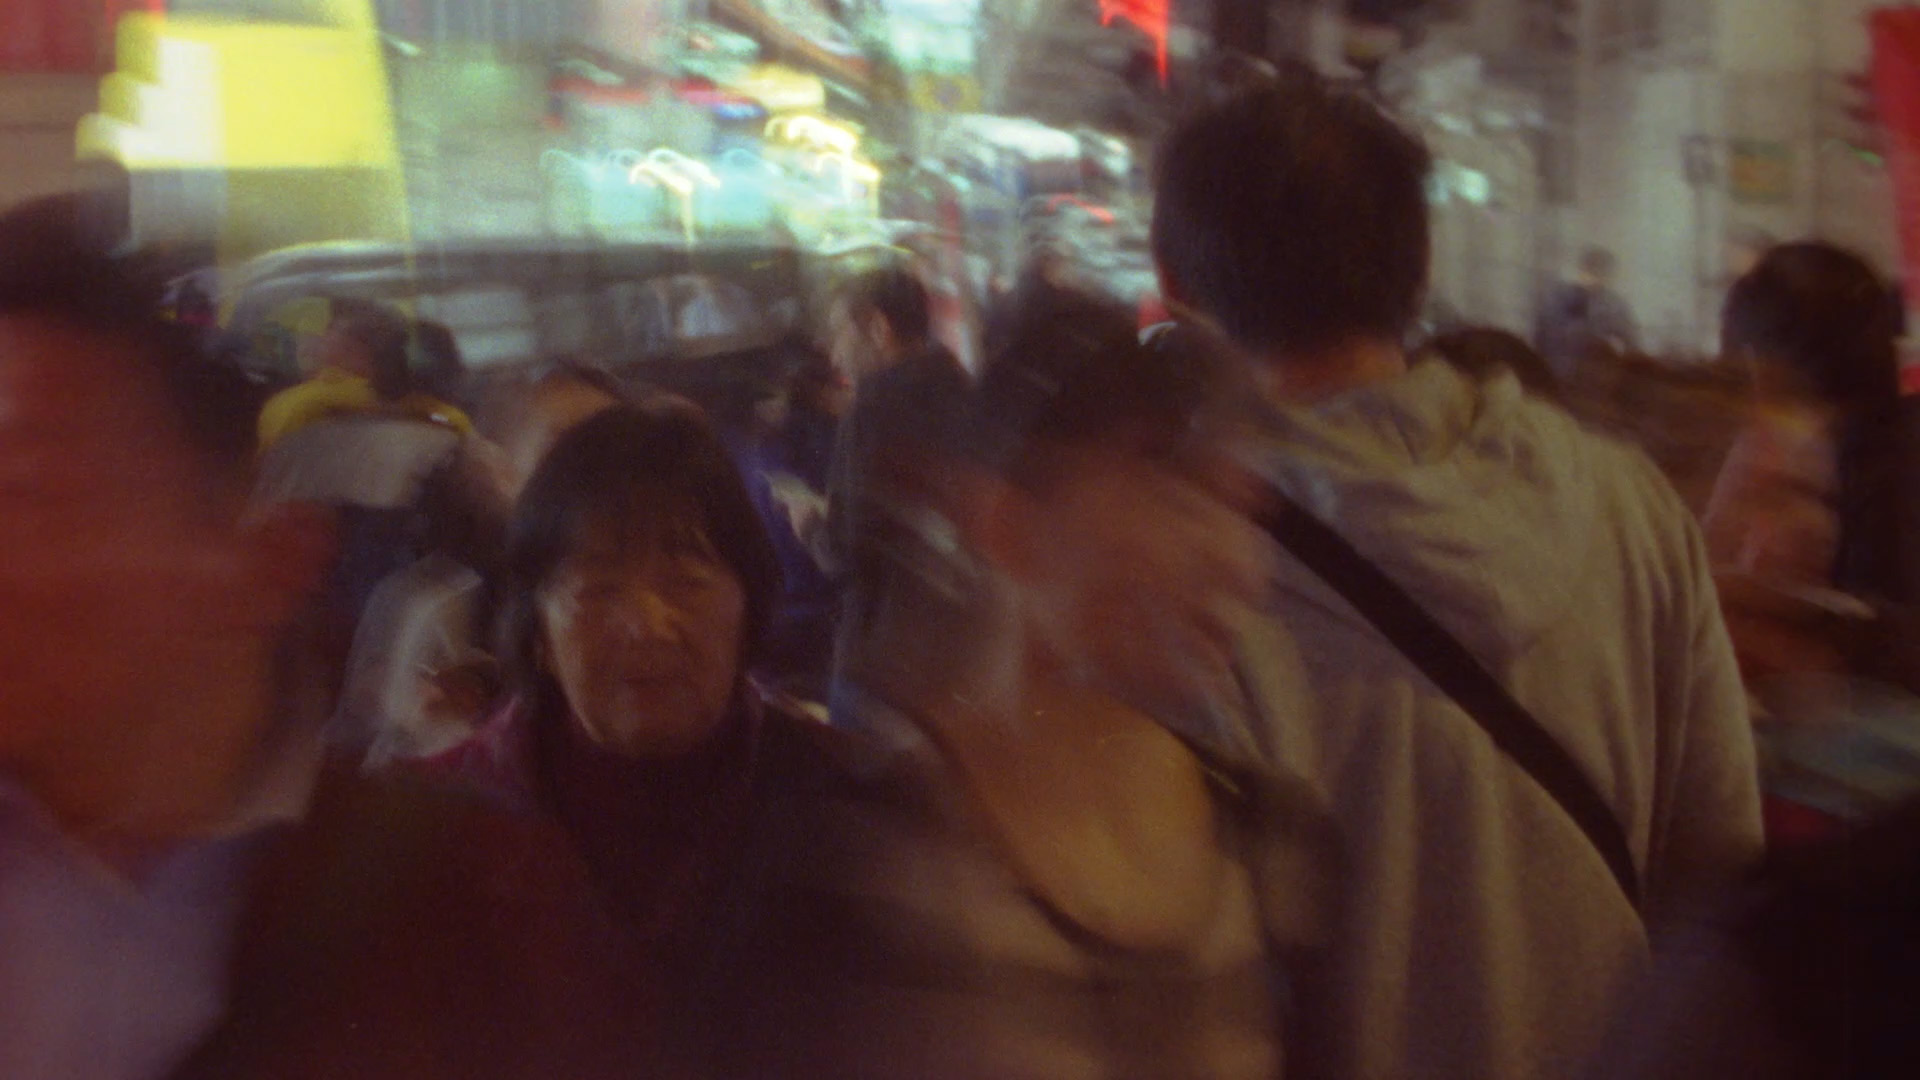 Motion blurred image of a sidewalk crowded with pedestrians from Signal 8 (2019) by Simon Liu